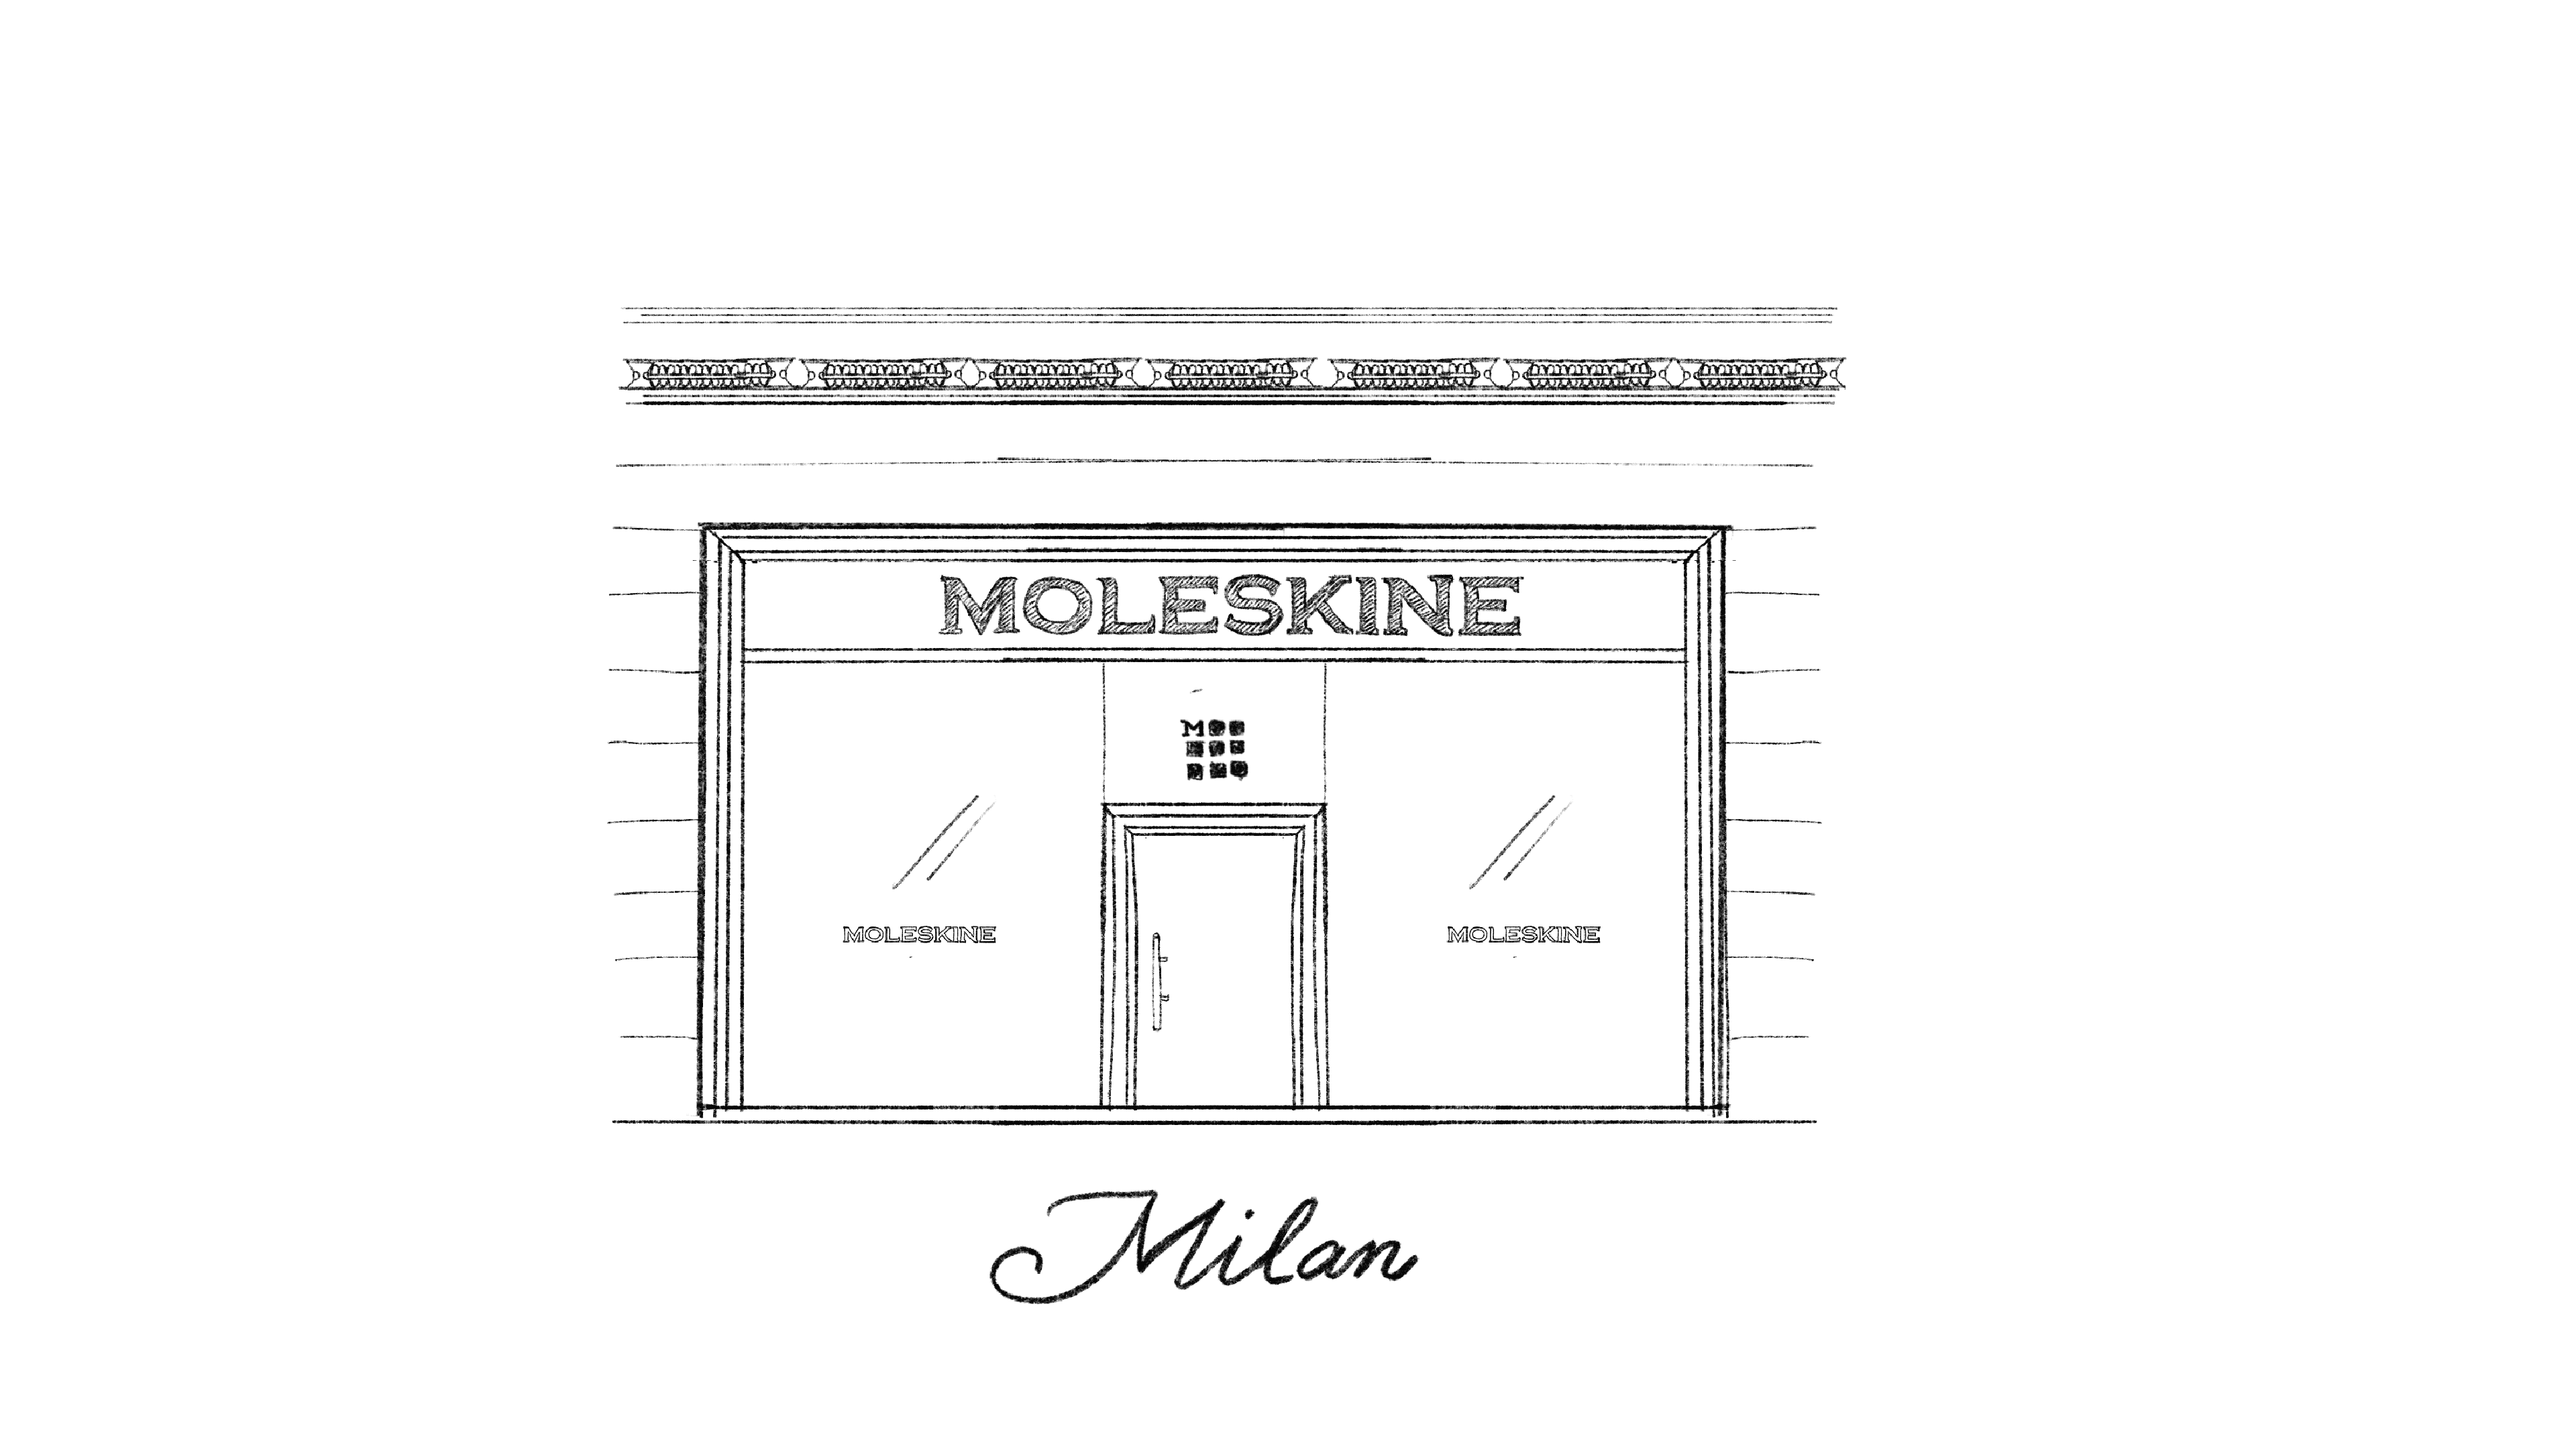 MOLESKINE-store-sign-sketch-03